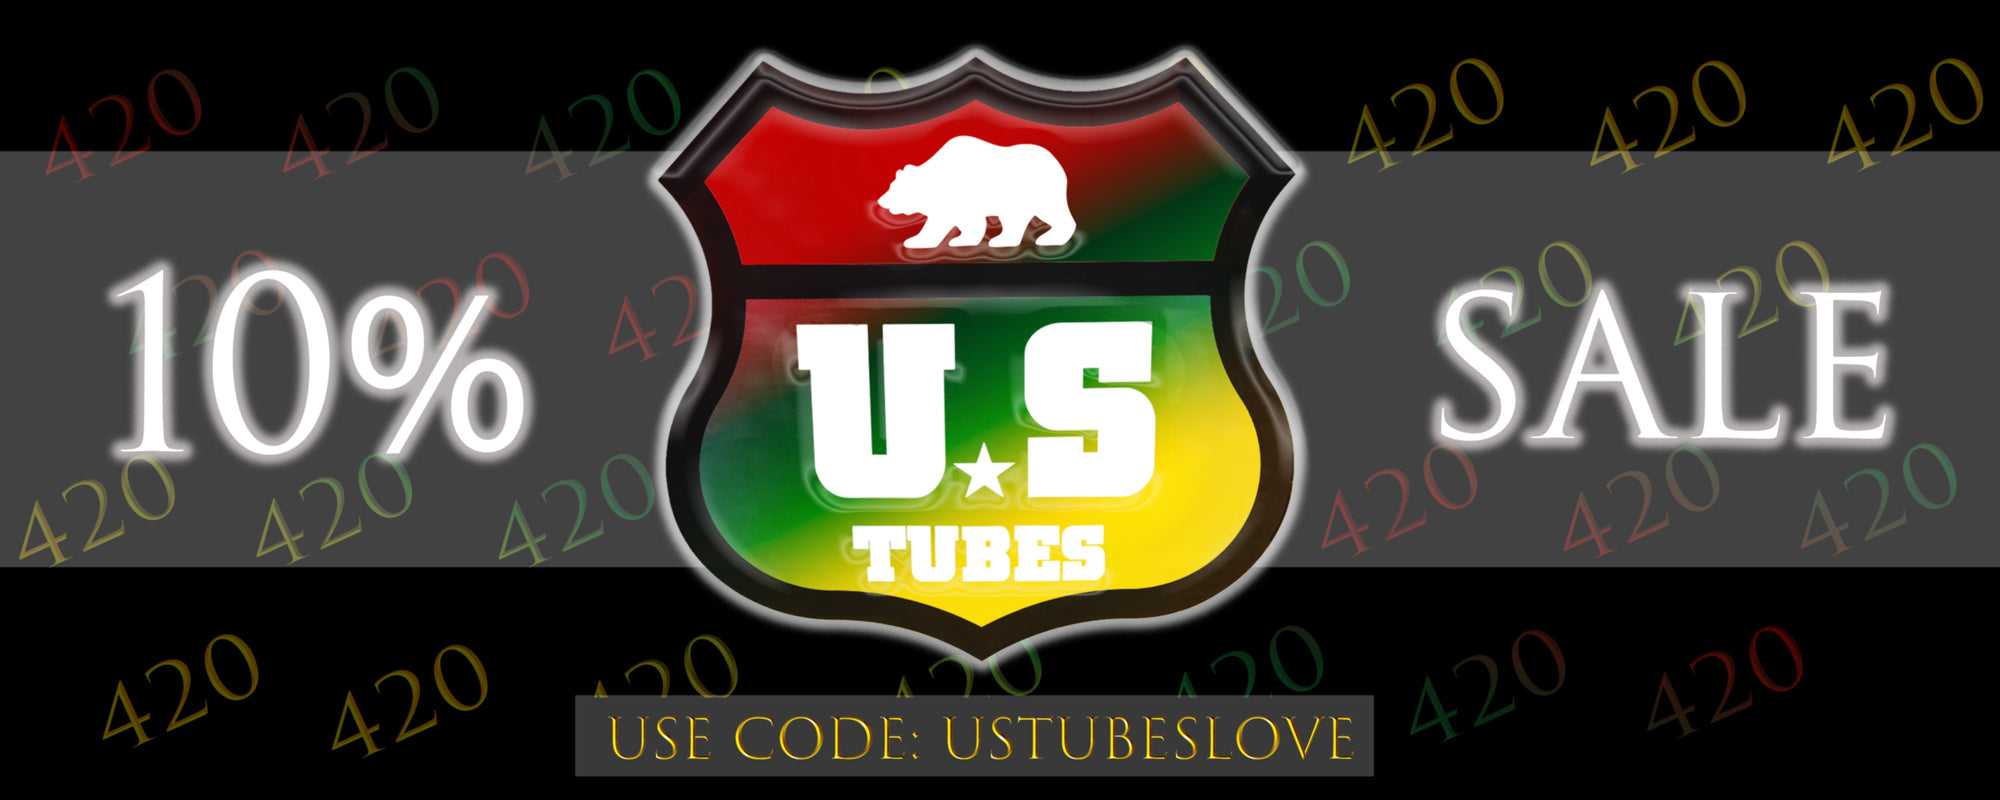 US TUBES 420 Sale Banner with Rasta Color theme